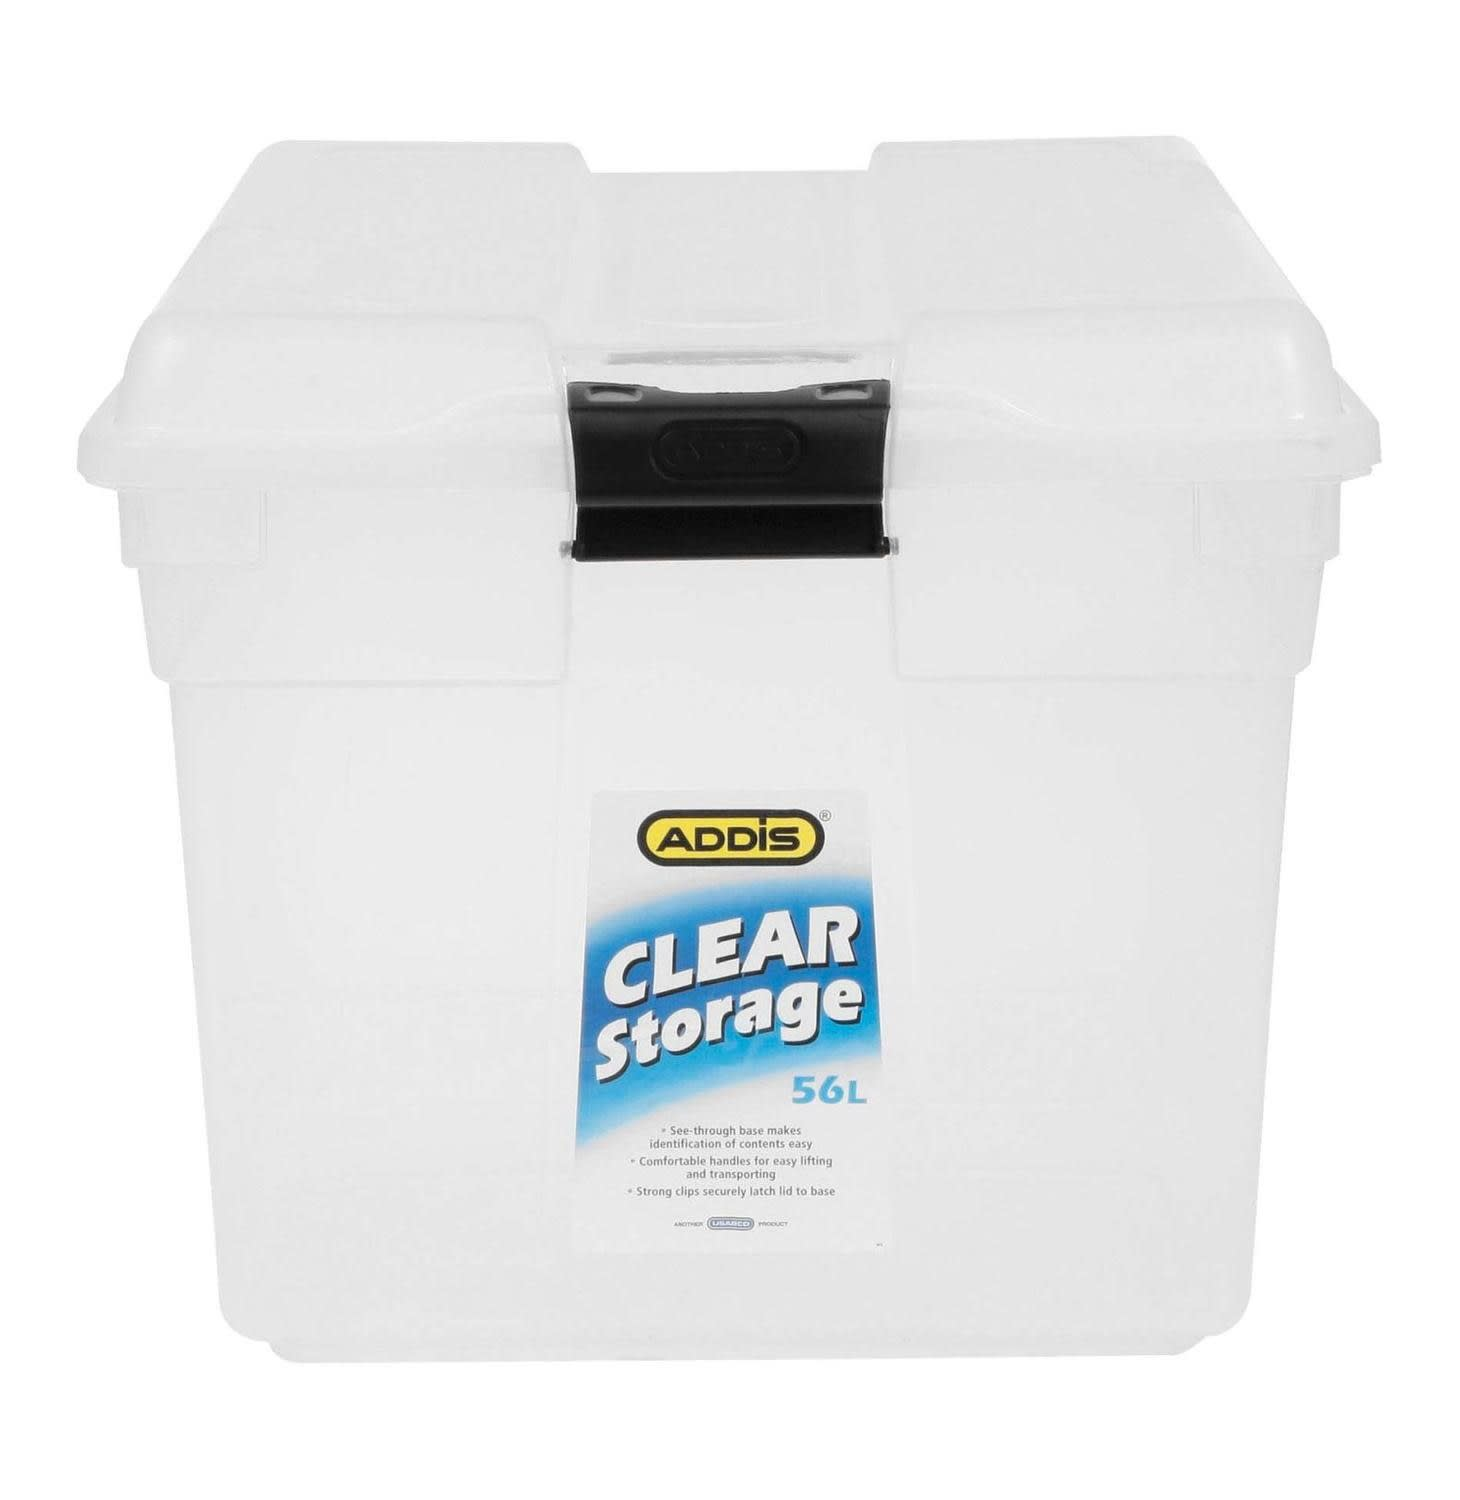 Addis Clear Storage Box (56L)